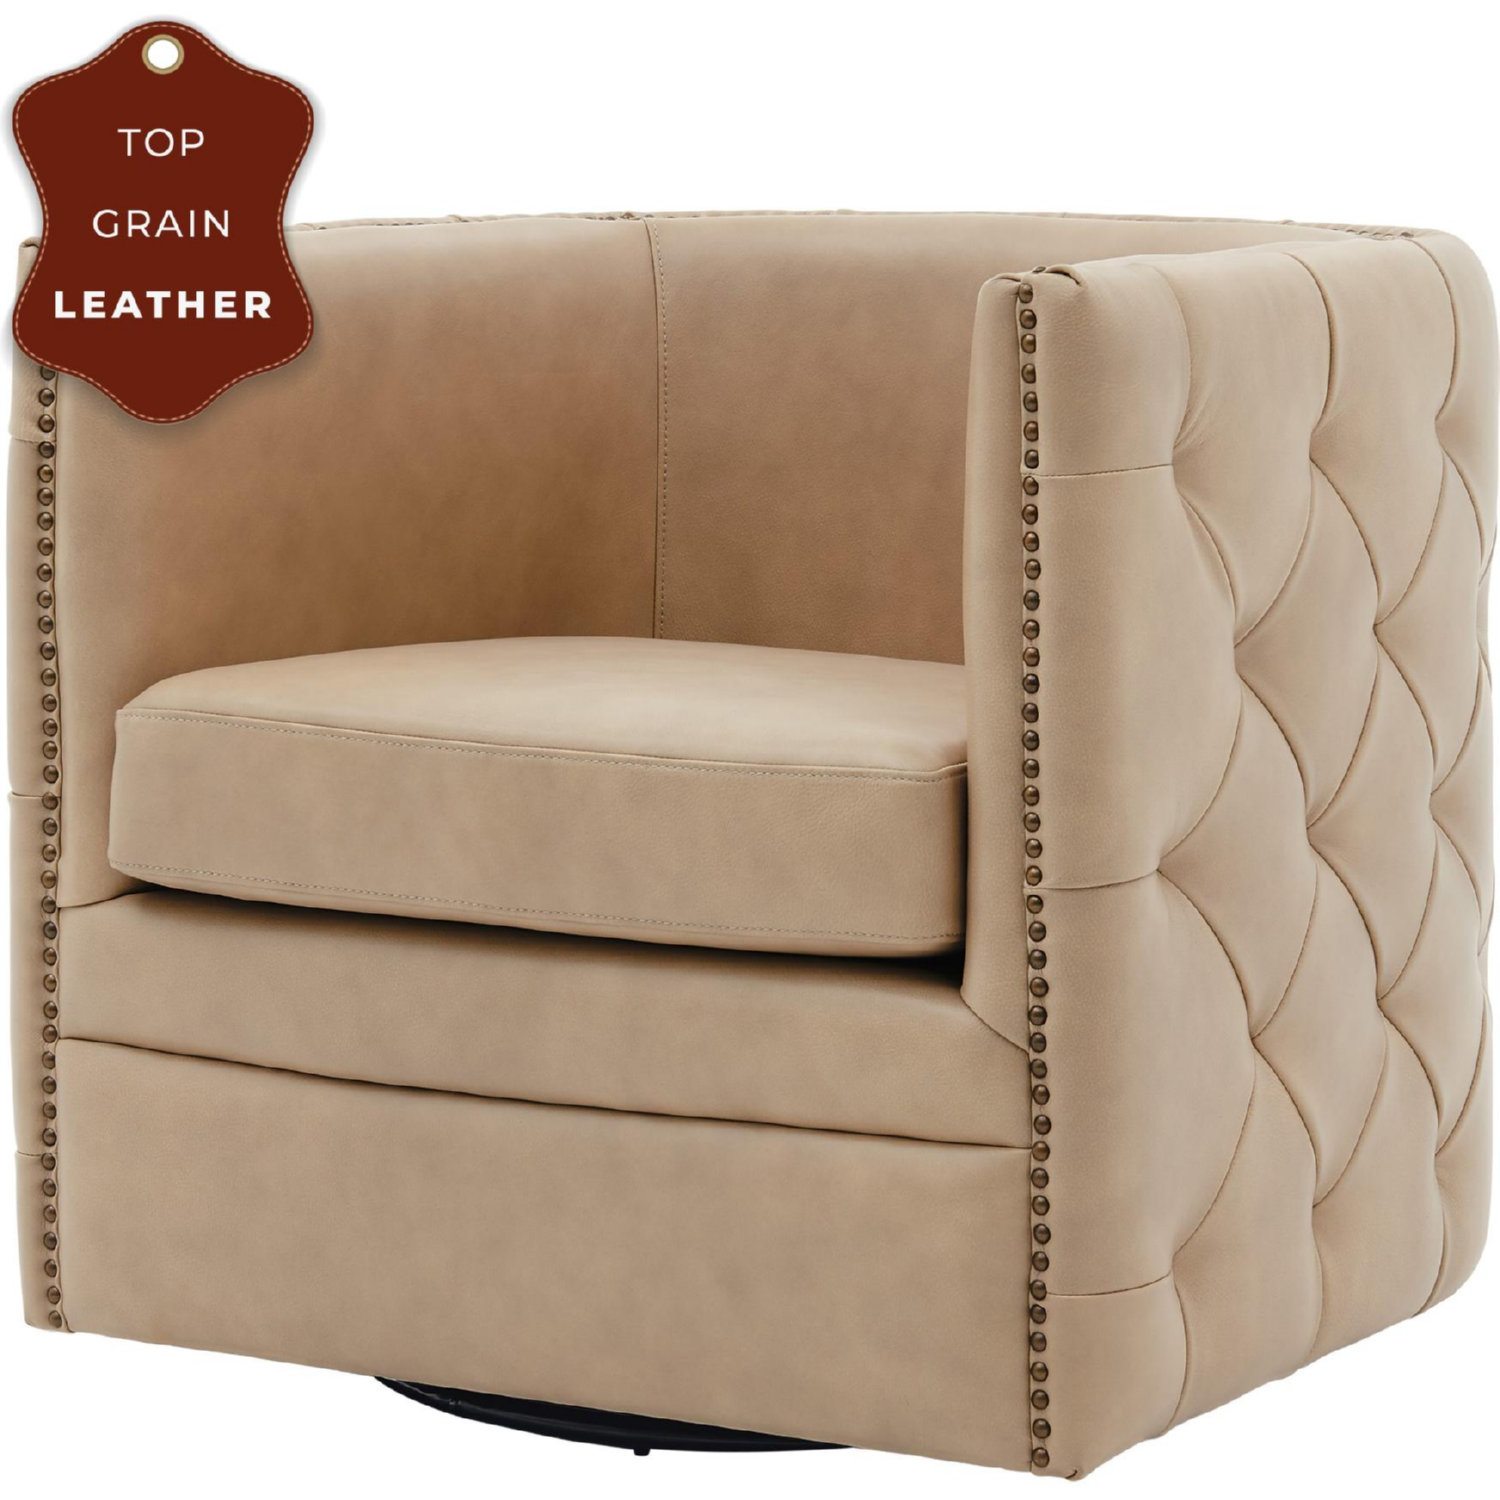 Npd 1900152 427 Leslie Swivel Accent Chair In Tufted Beige Top Grain Leather